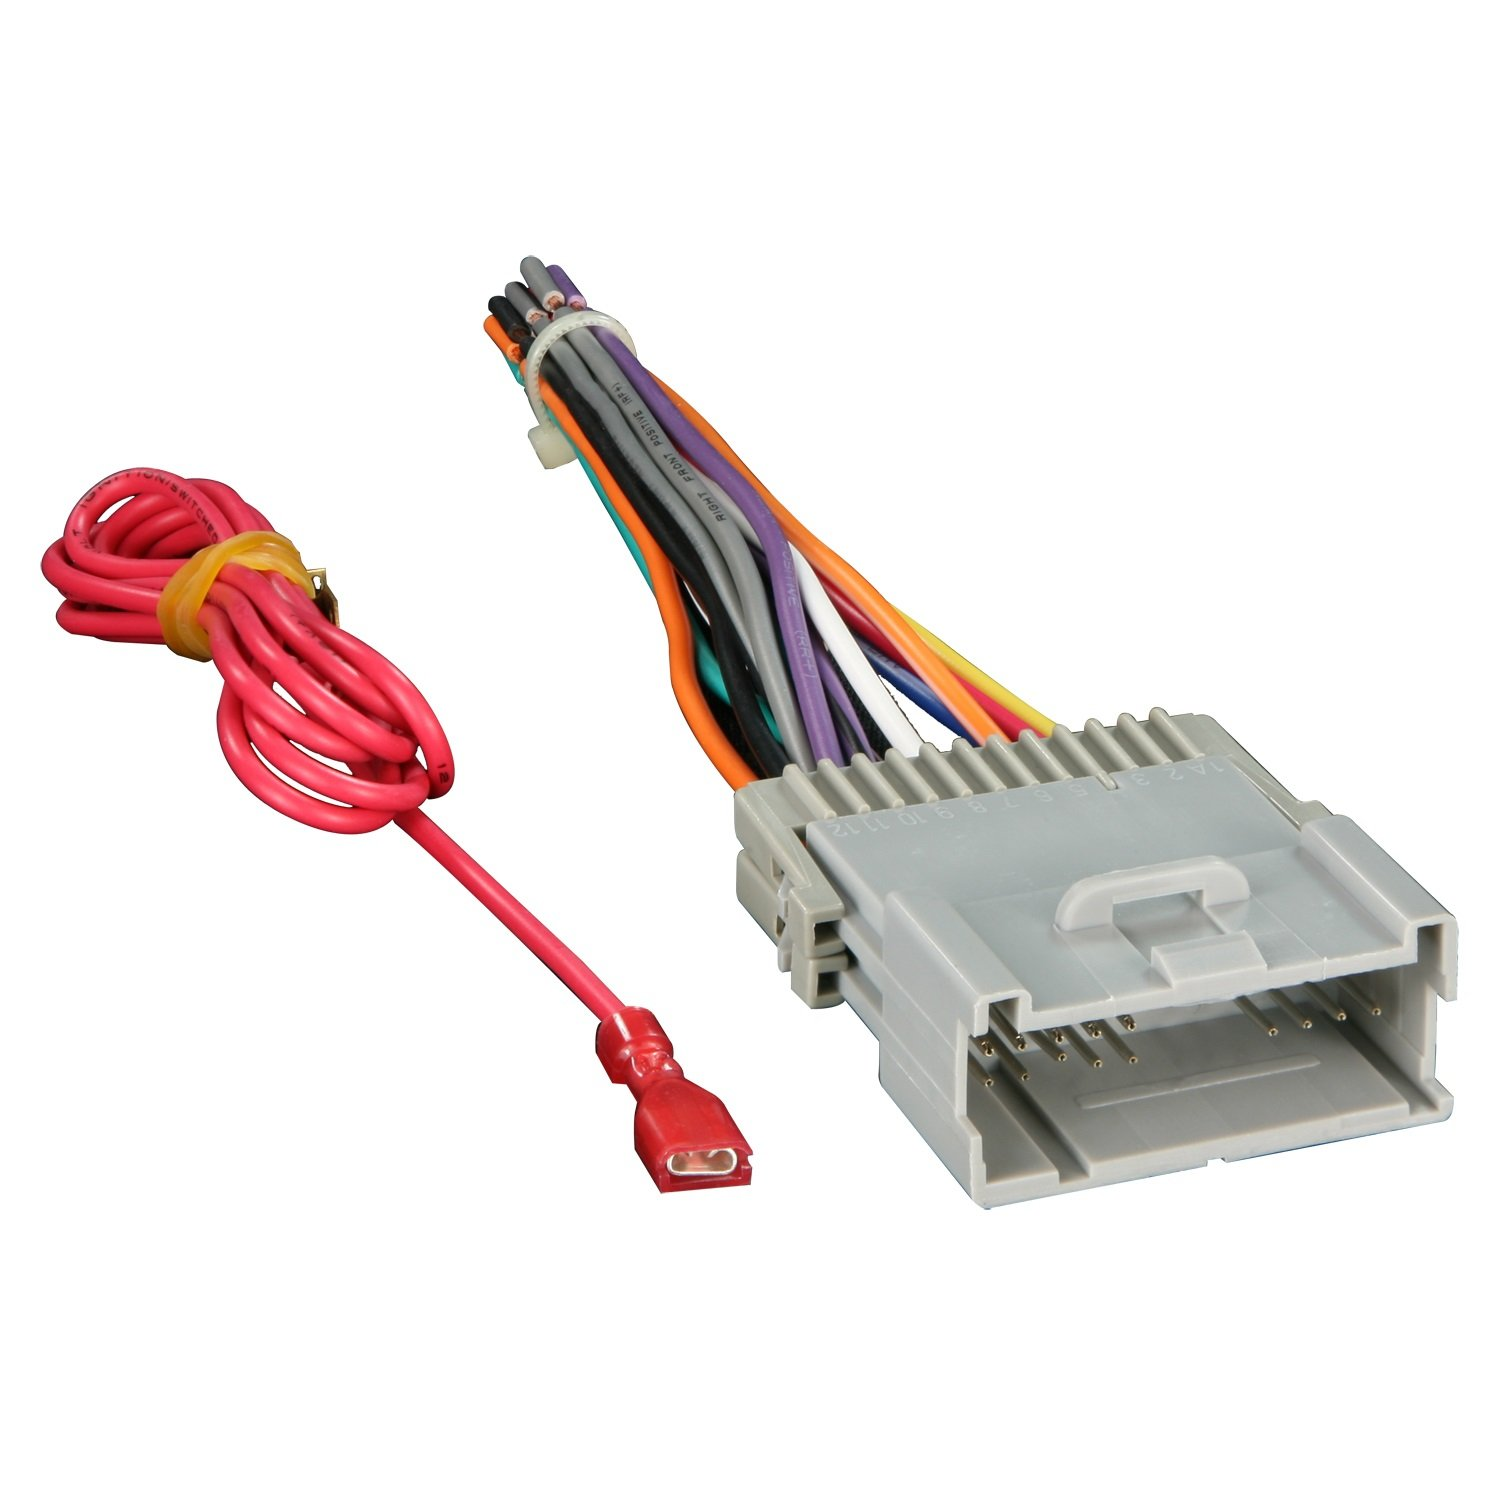 61eewxp9orL._SL1500_ amazon com metra 70 2003 radio wiring harness for gm 98 08 gm wiring harness at readyjetset.co